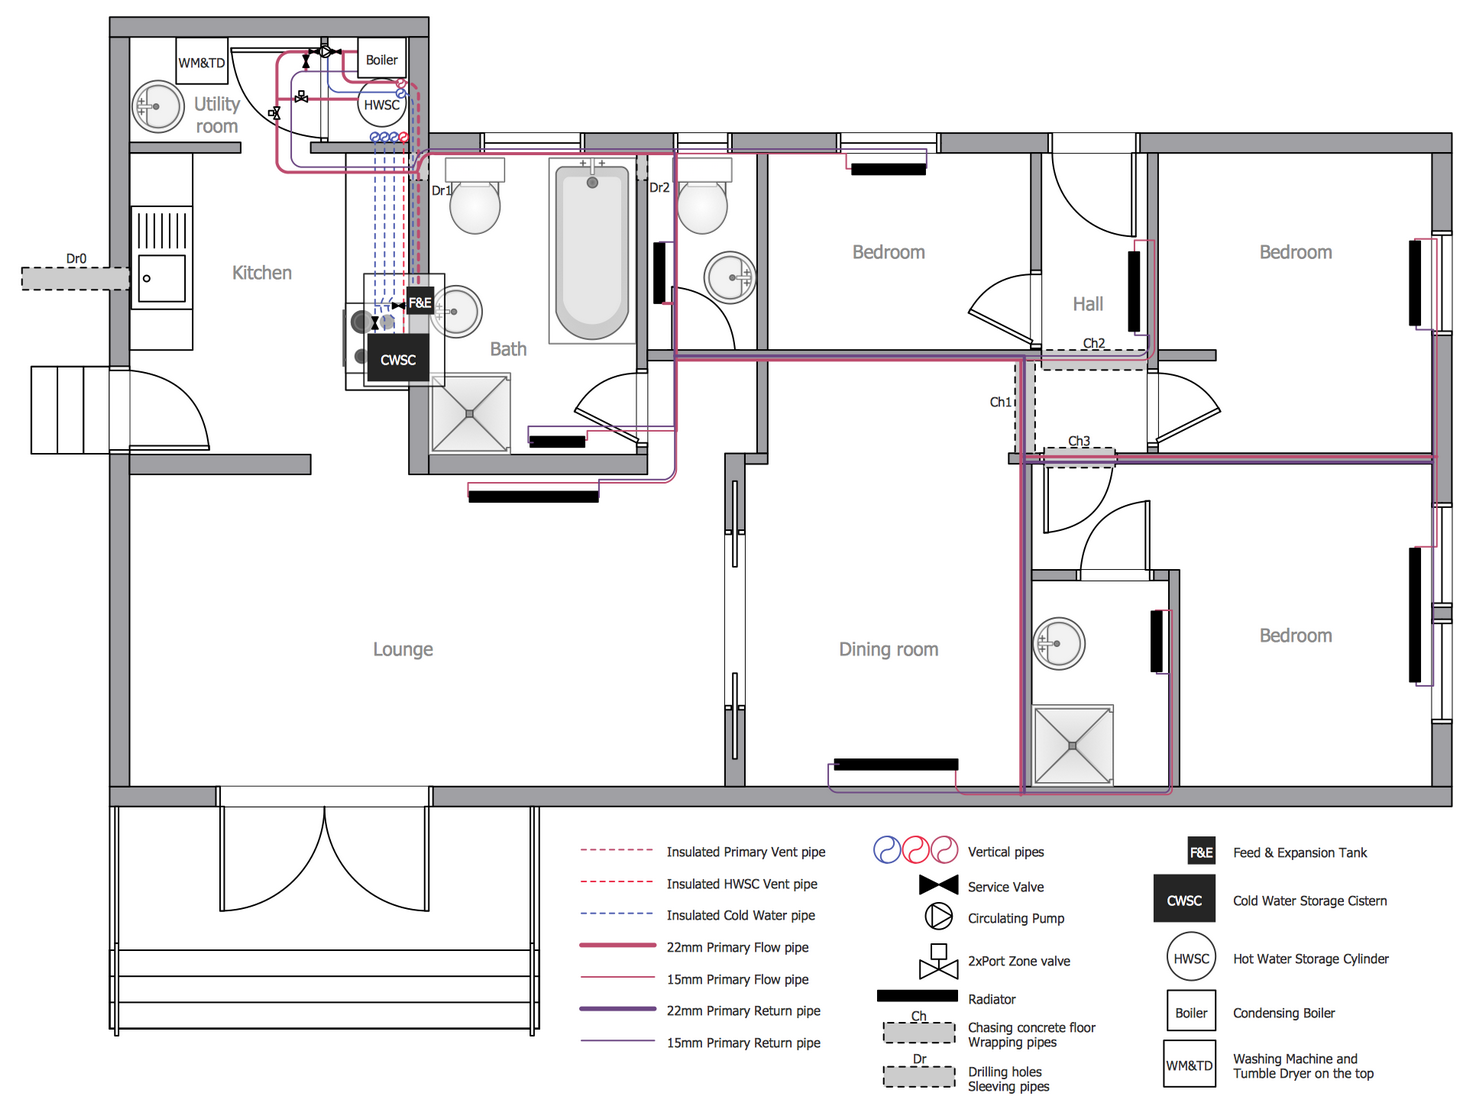 Plumbing and Piping Plans Solution | ConceptDraw com